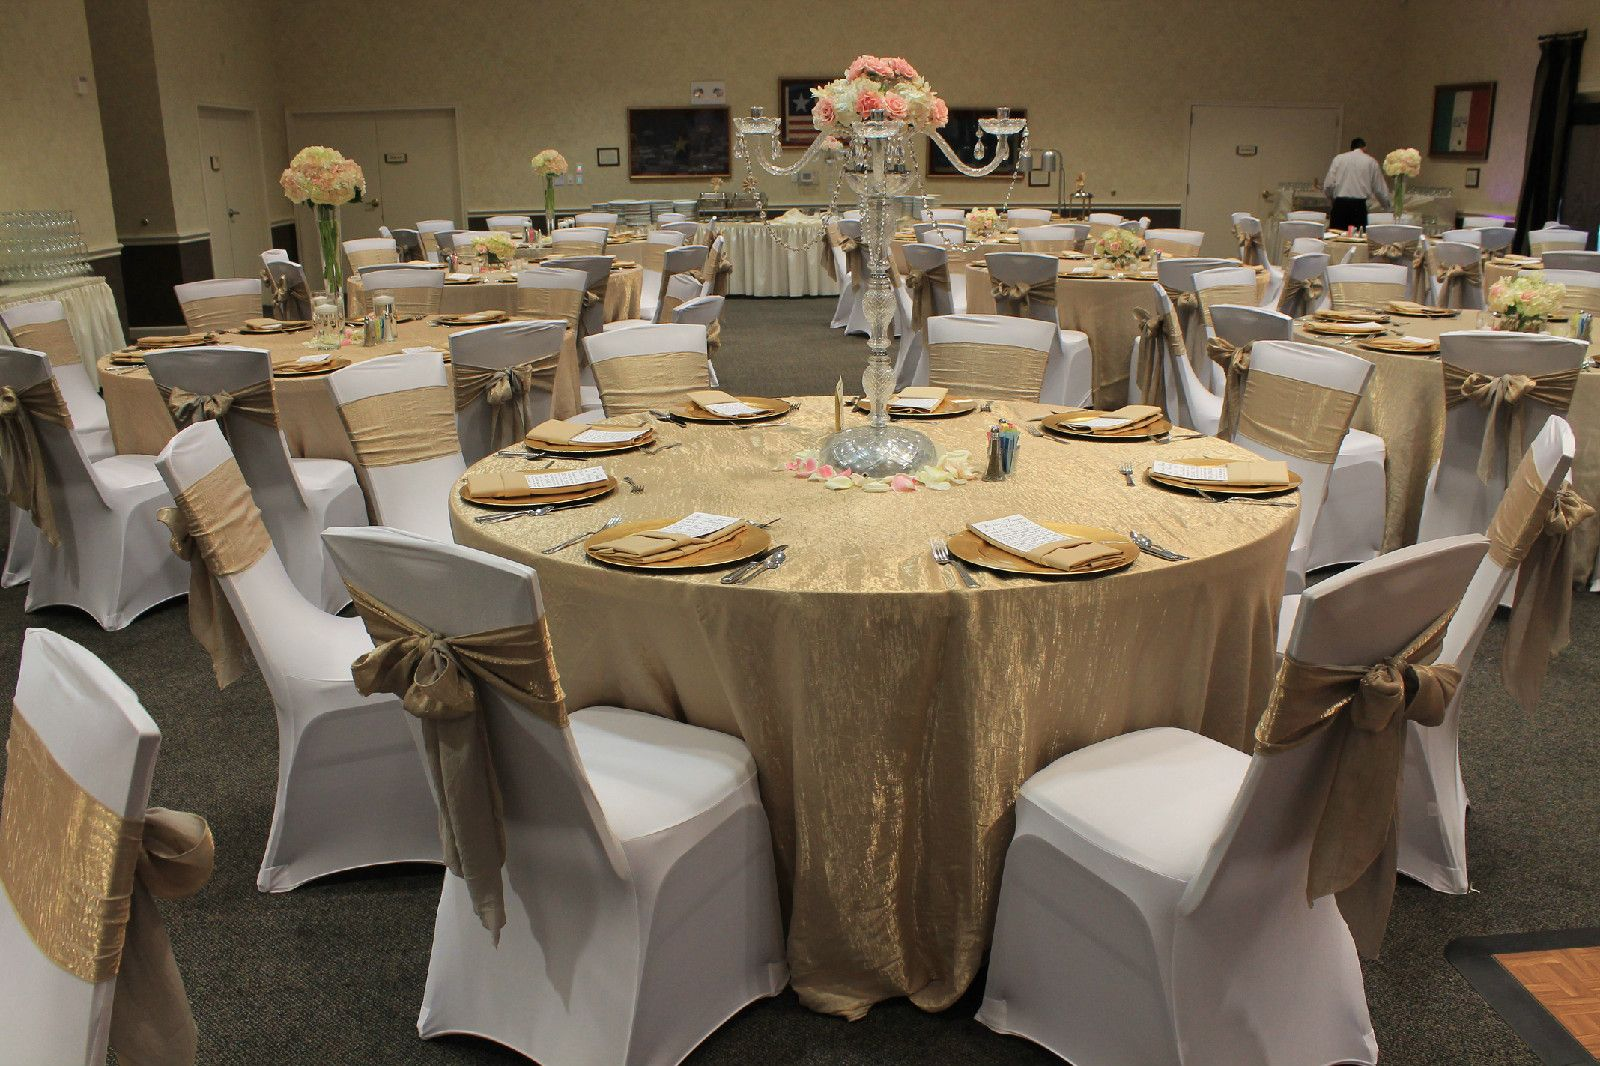 Ivory Chair Covers With Gold Sash Ergonomic Kl Champagne Crushed Iridescent Satin Tablecloths And Sashes